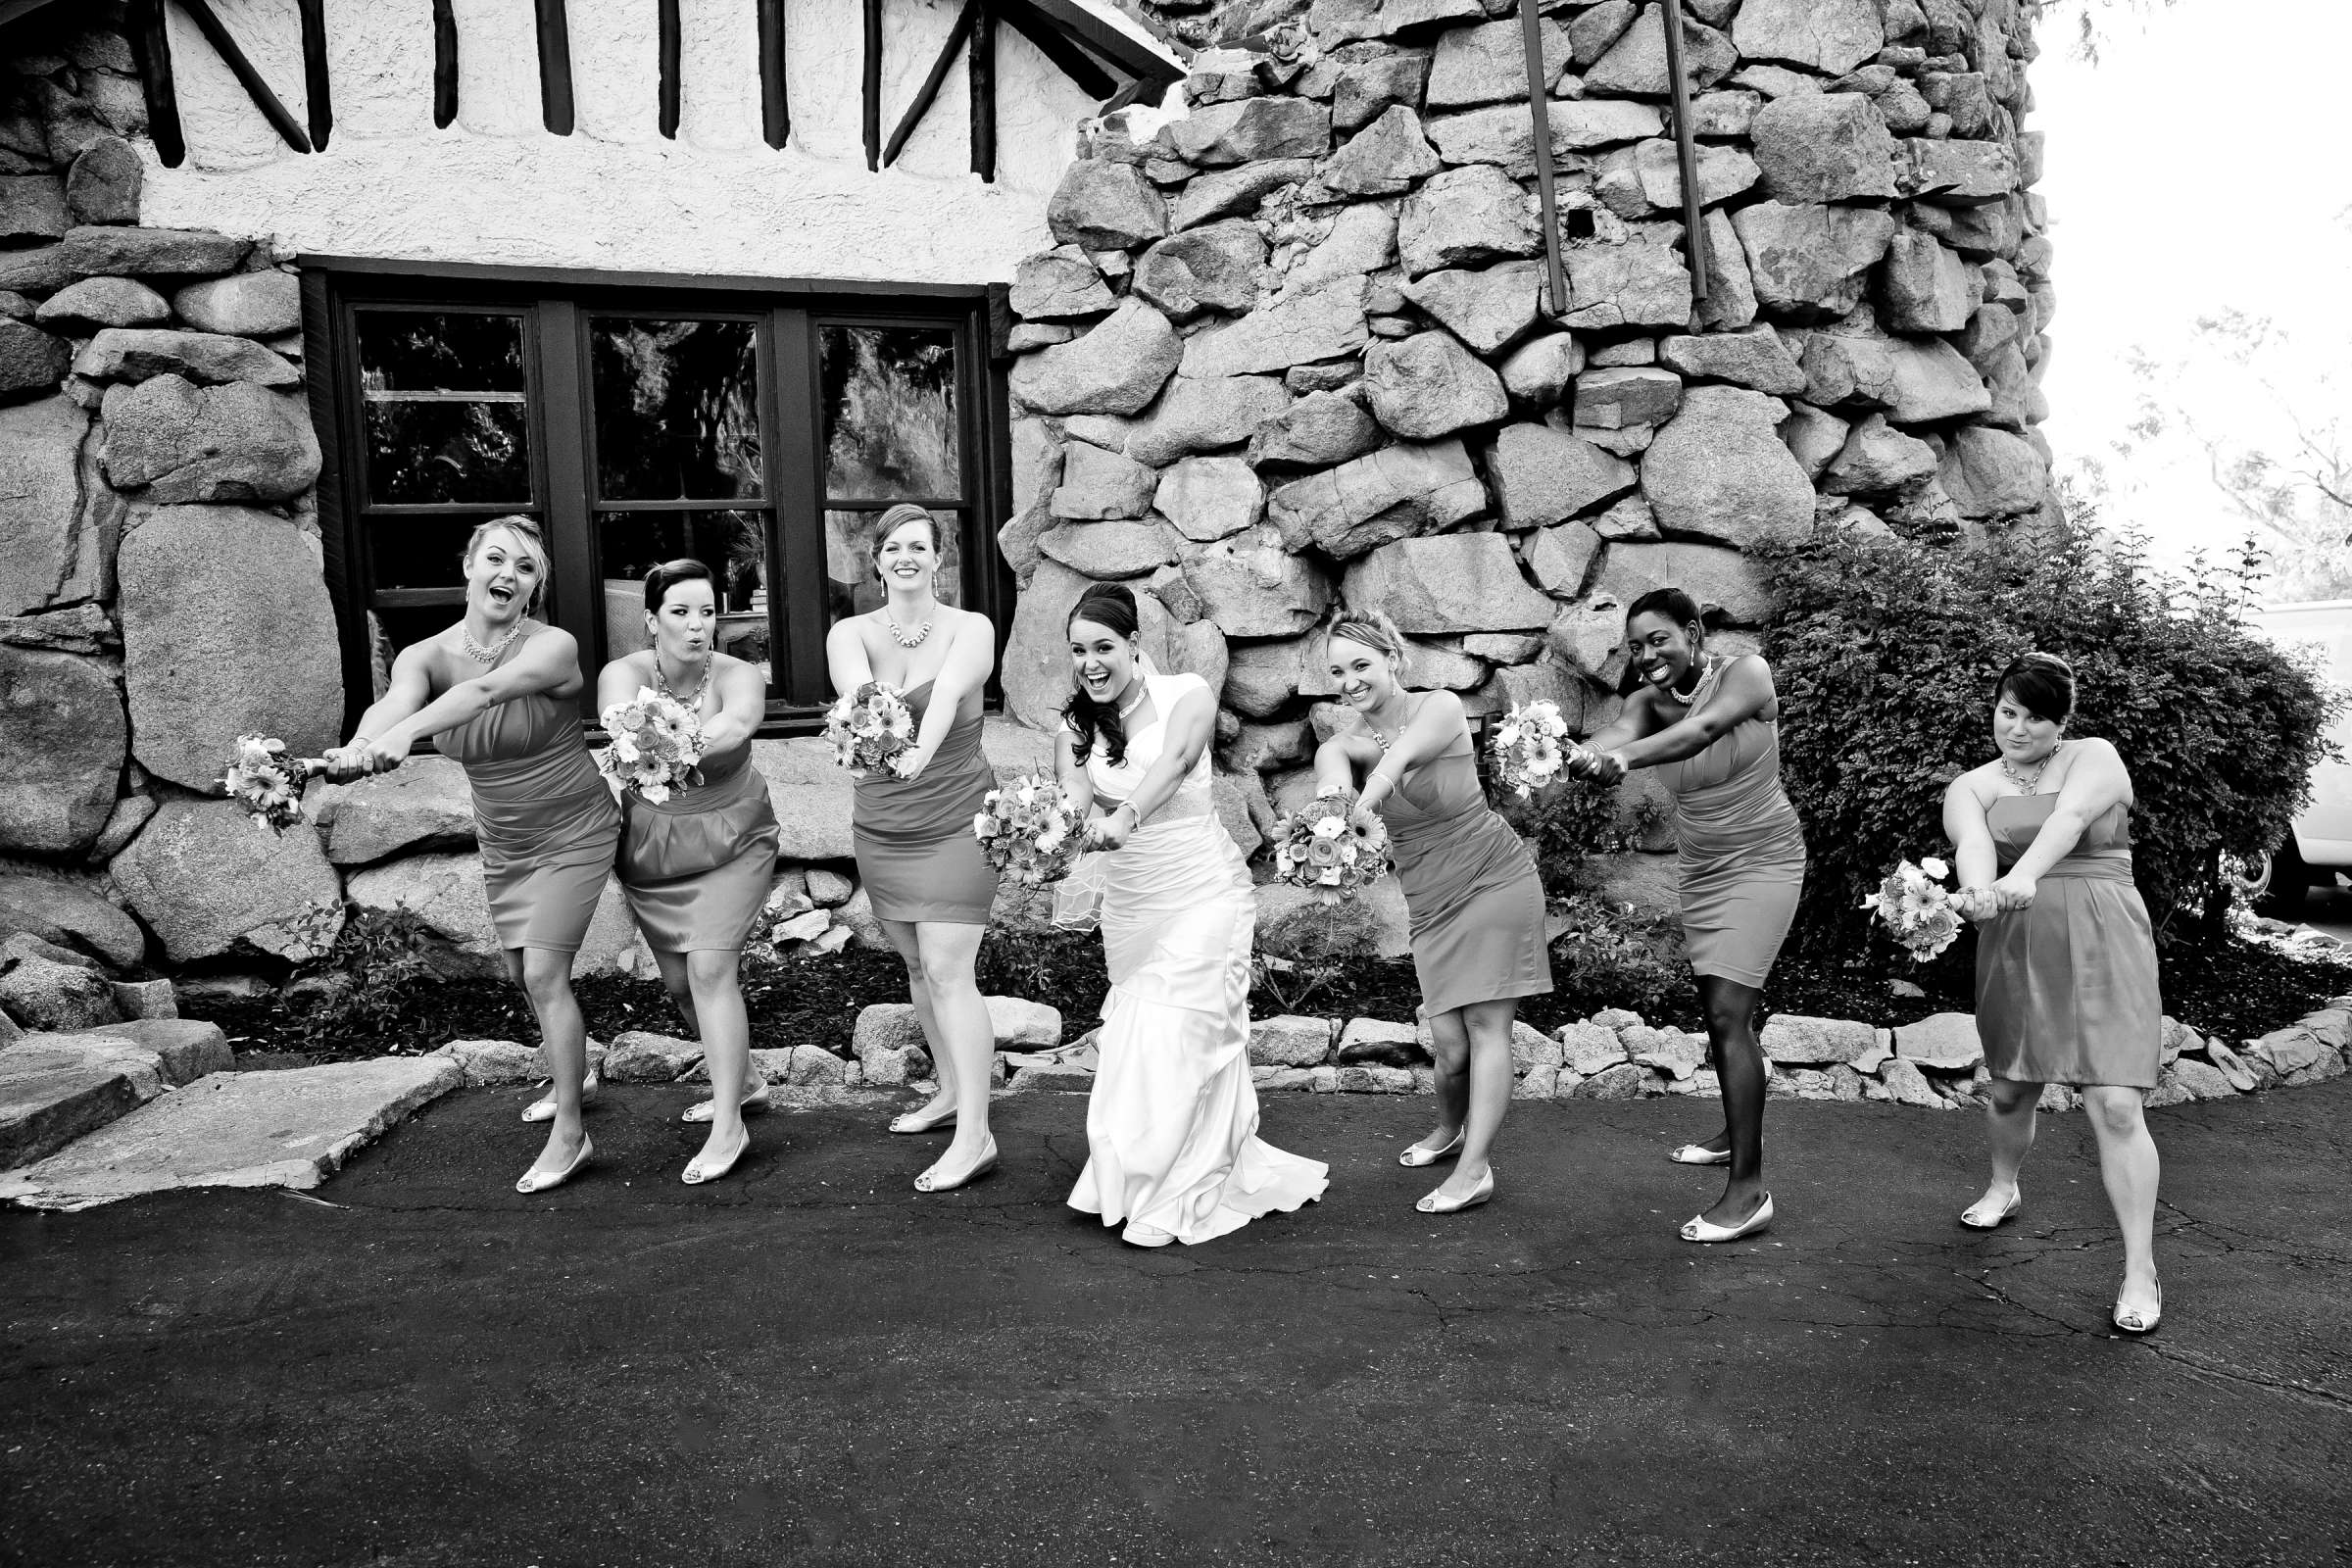 Mt Woodson Castle Wedding, Krista and Donald Wedding Photo #344701 by True Photography